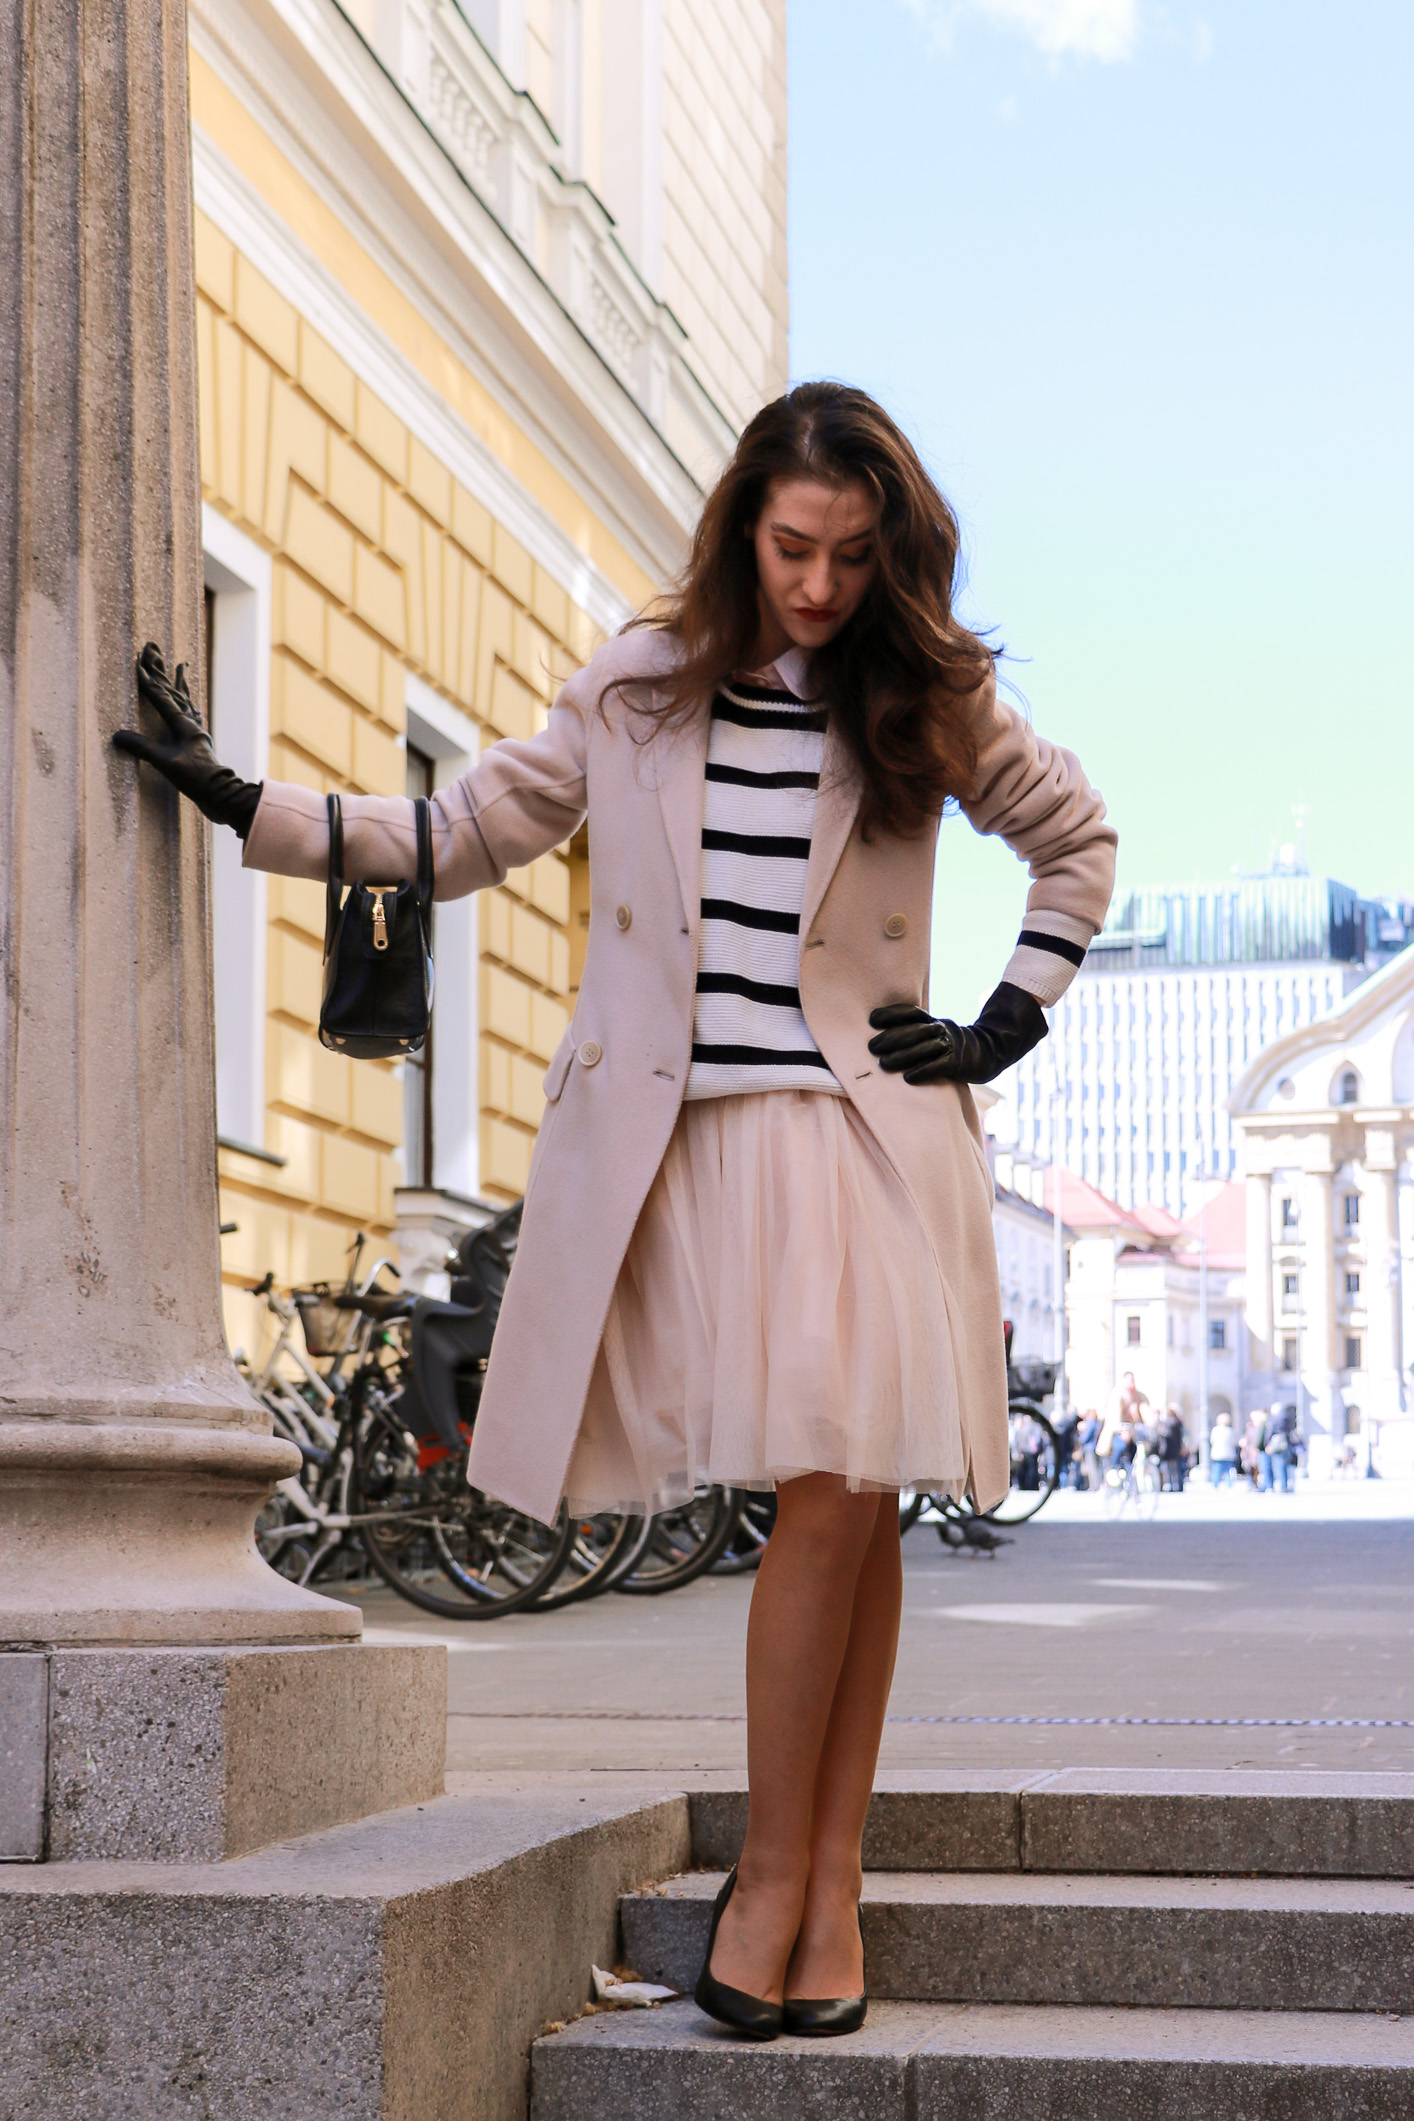 Fashion blogger Veronika Lipar of Brunette From Wall Street sharing what to wear to a date this spring